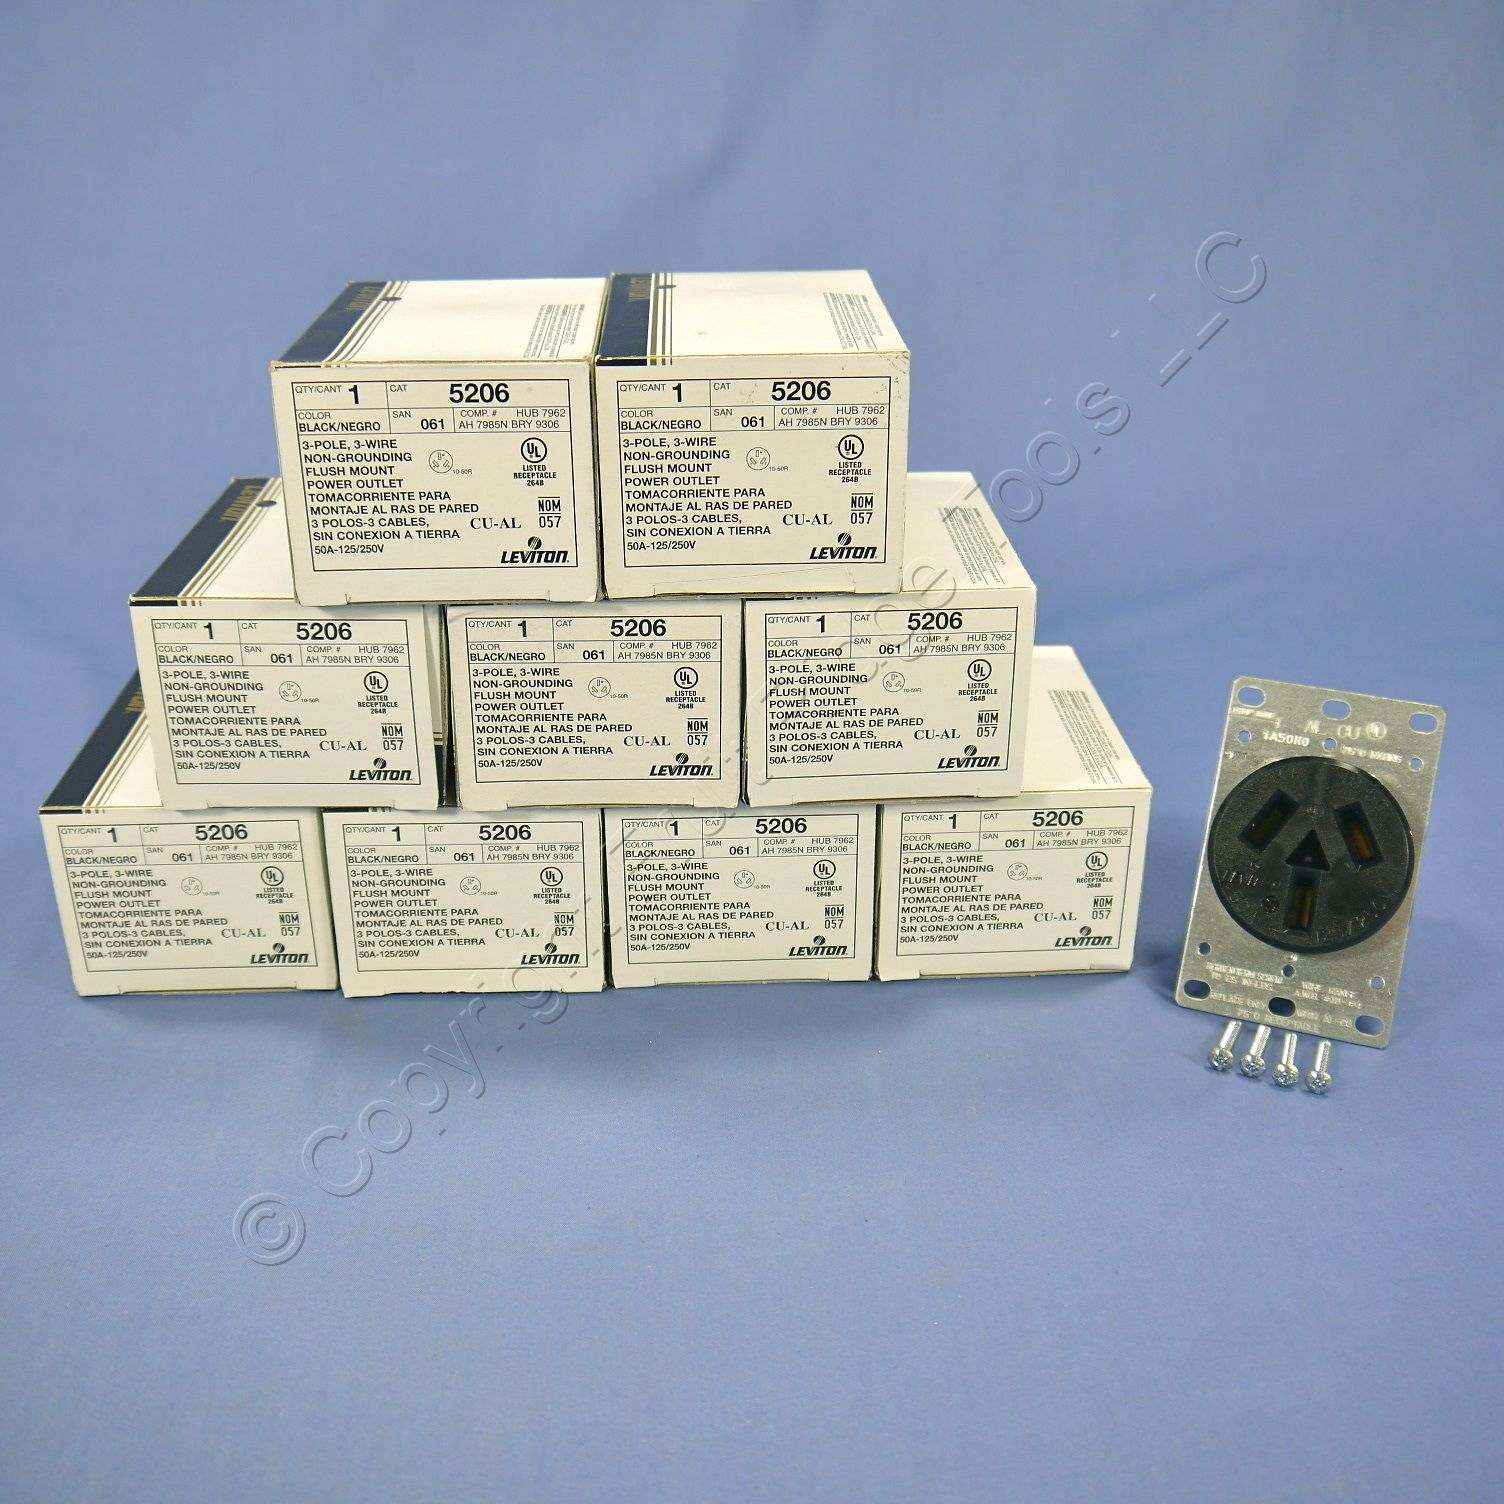 10 Leviton Dryer Range Power Outlet Receptacles NEMA 10-50R 50A 125 ...